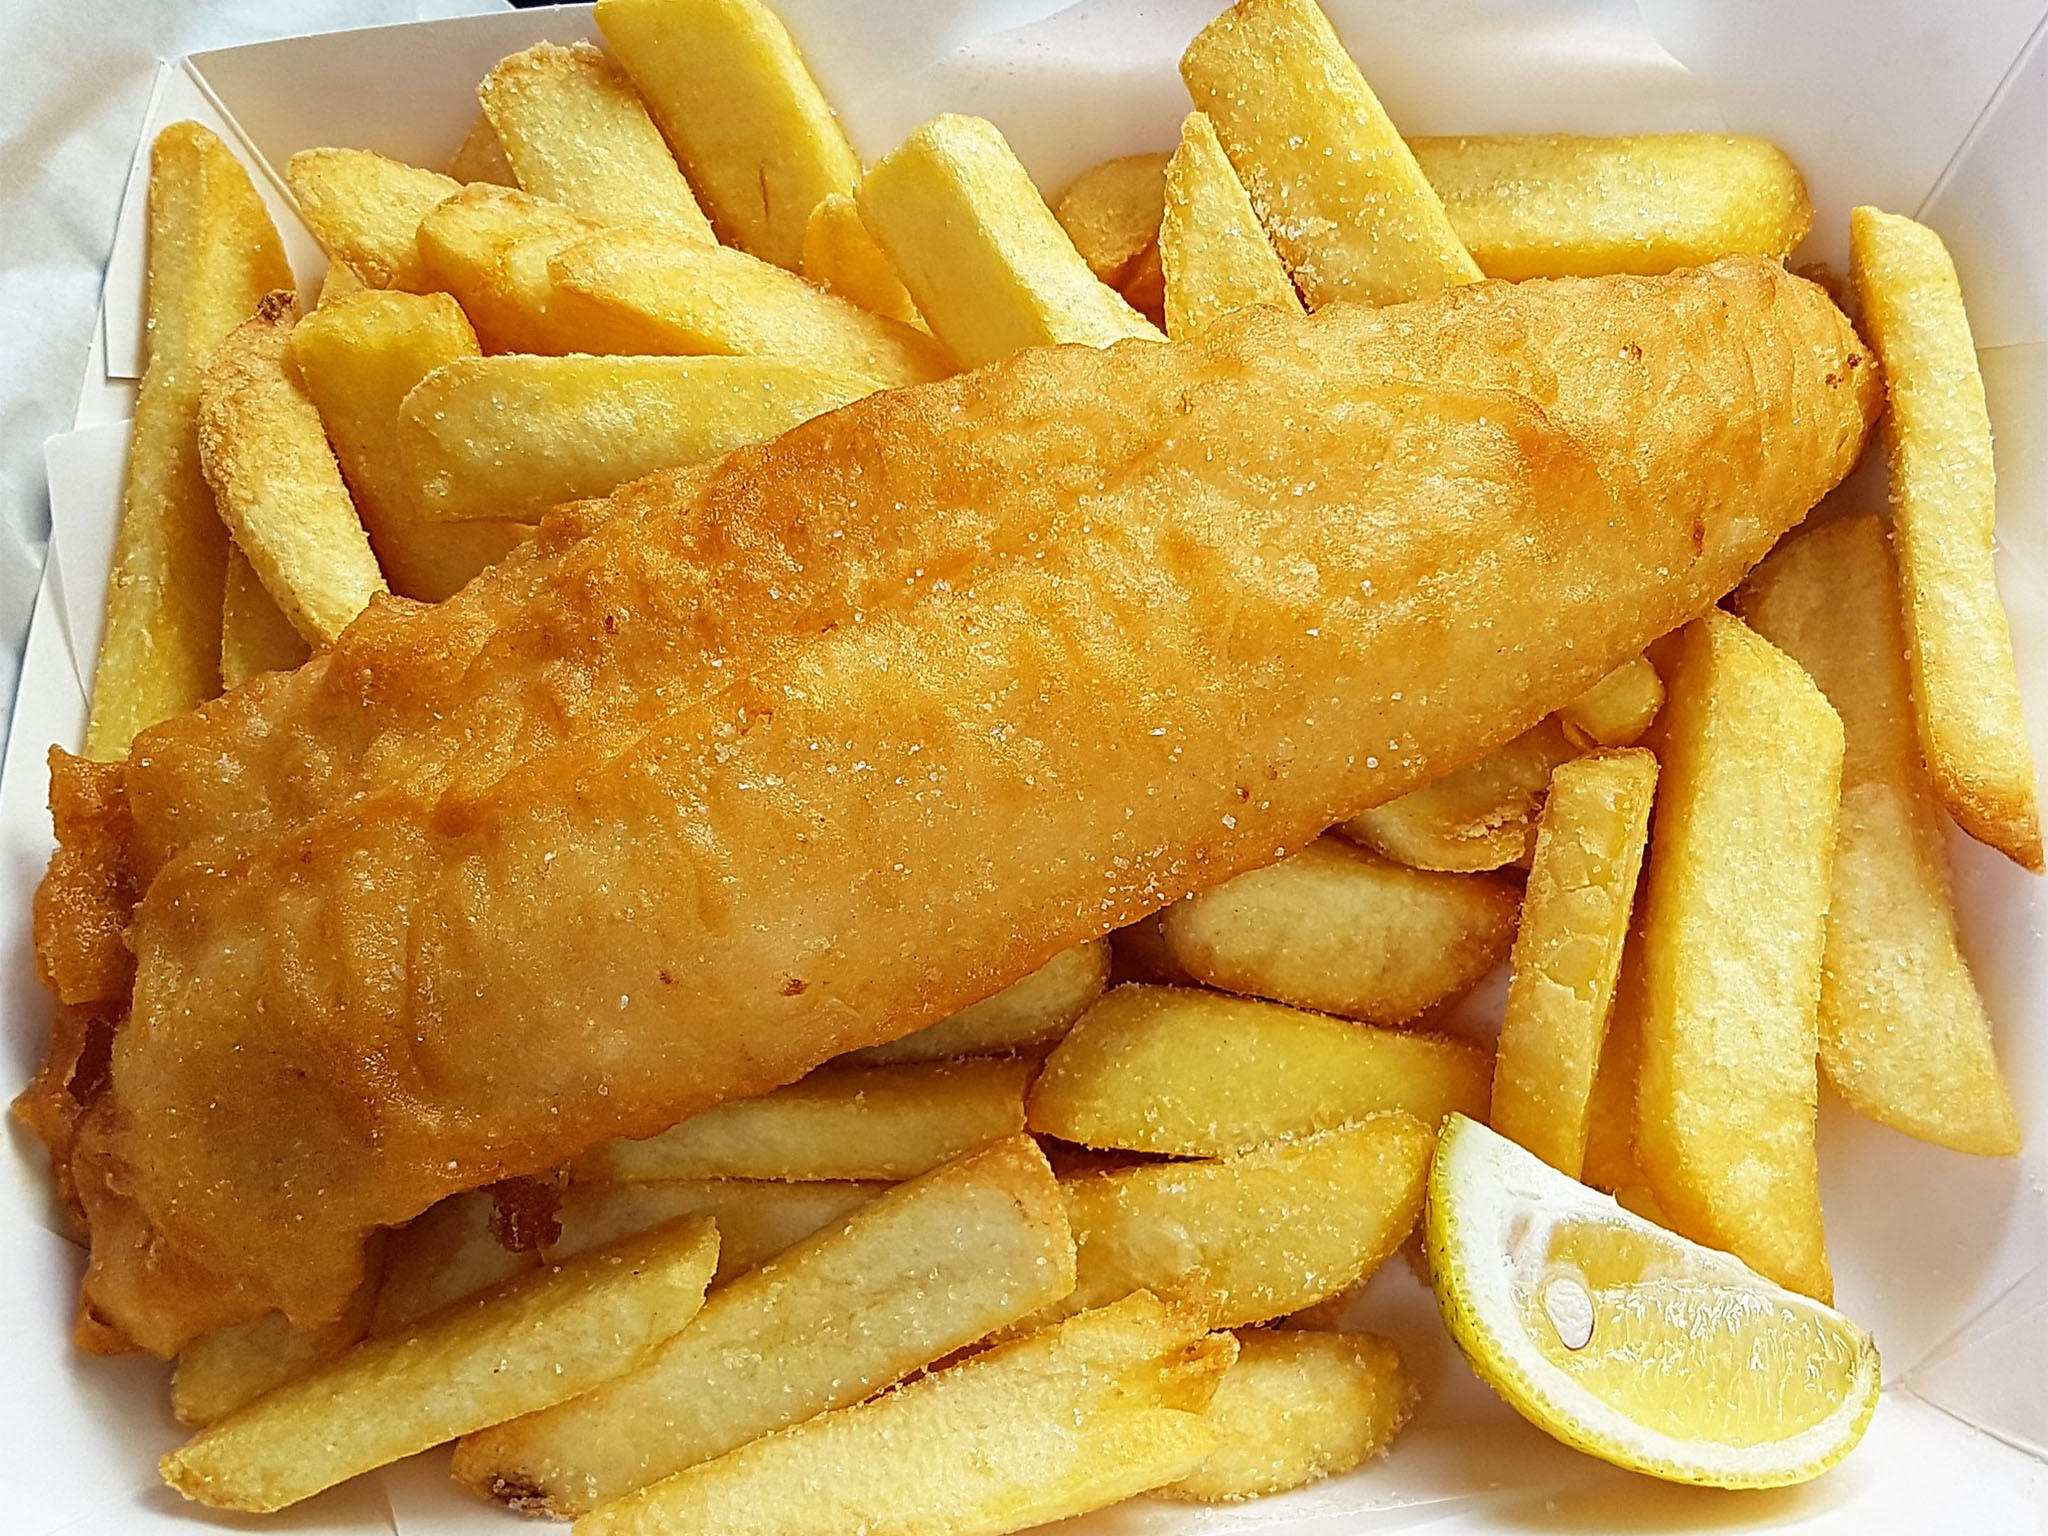 The 10 best fish and chips in Melbourne